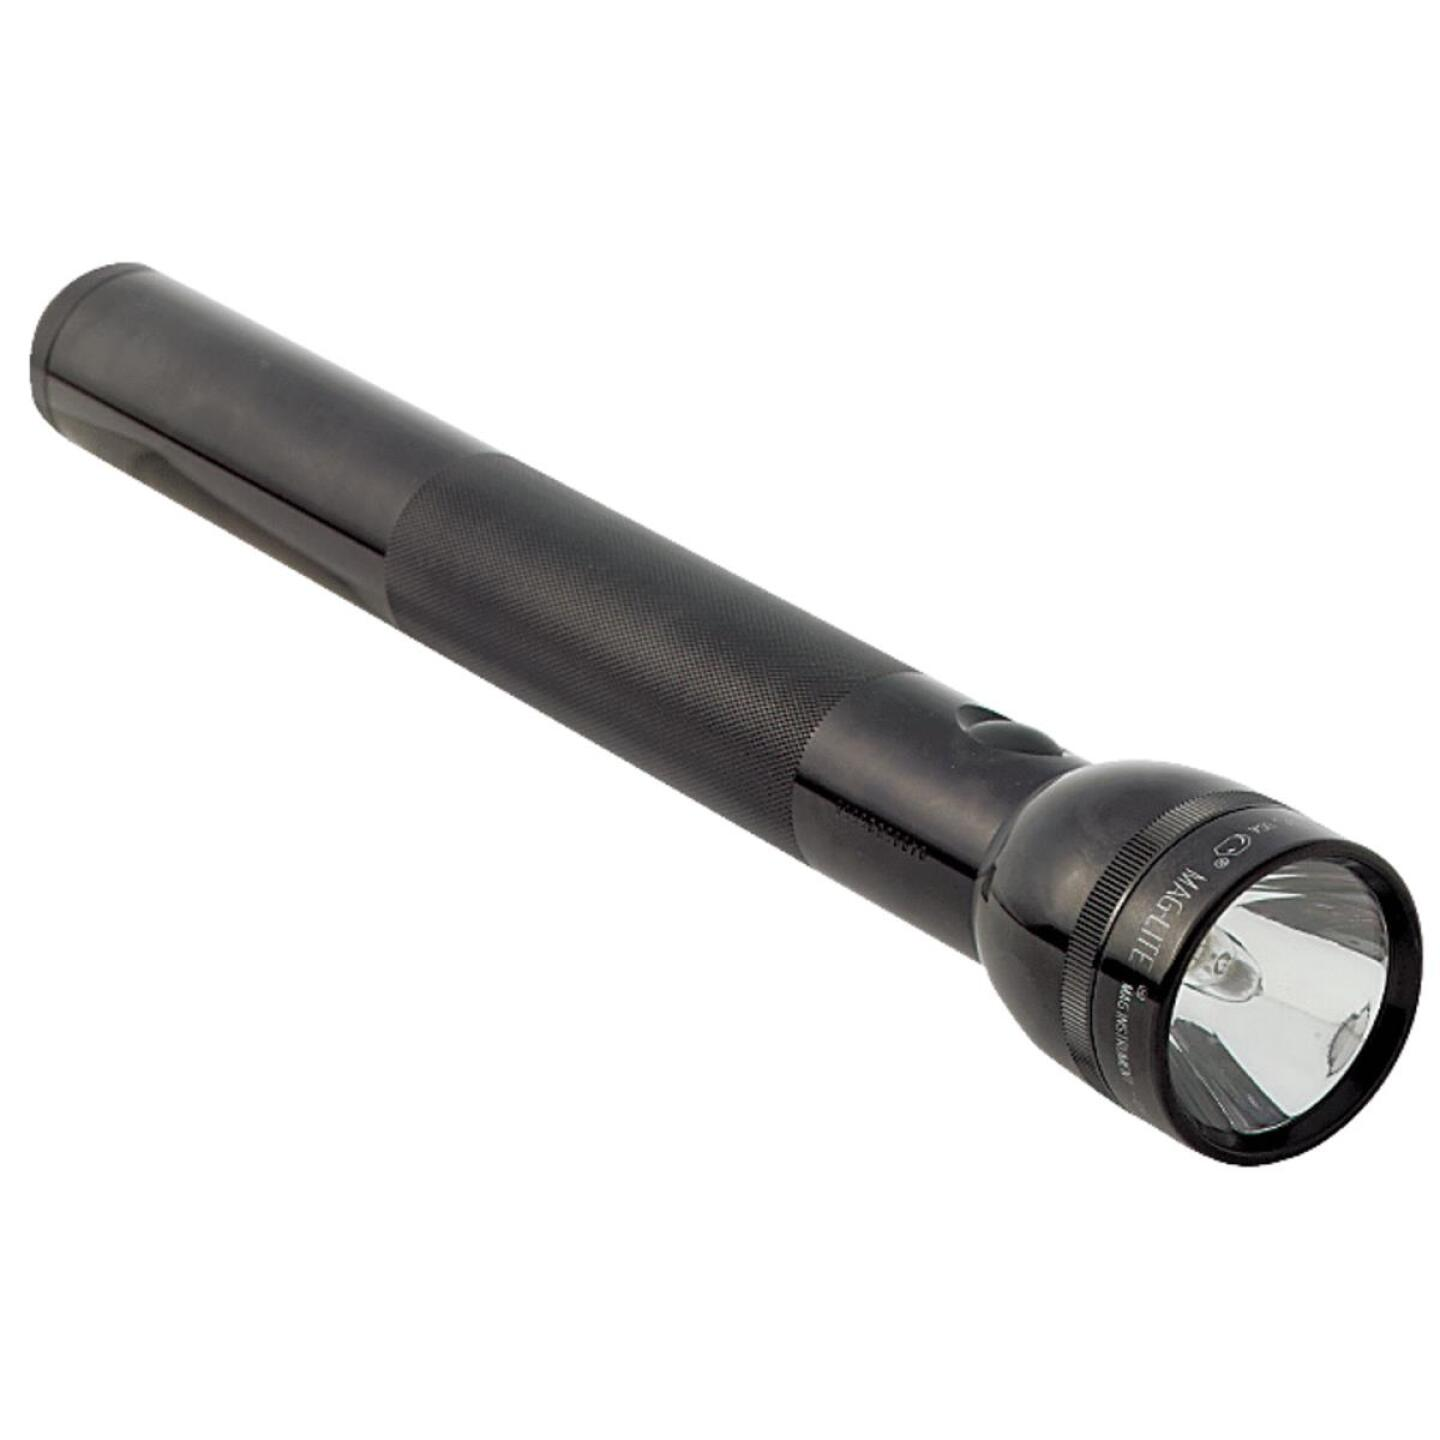 Maglite 98 Lm. Xenon 4D Flashlight, Black Image 4